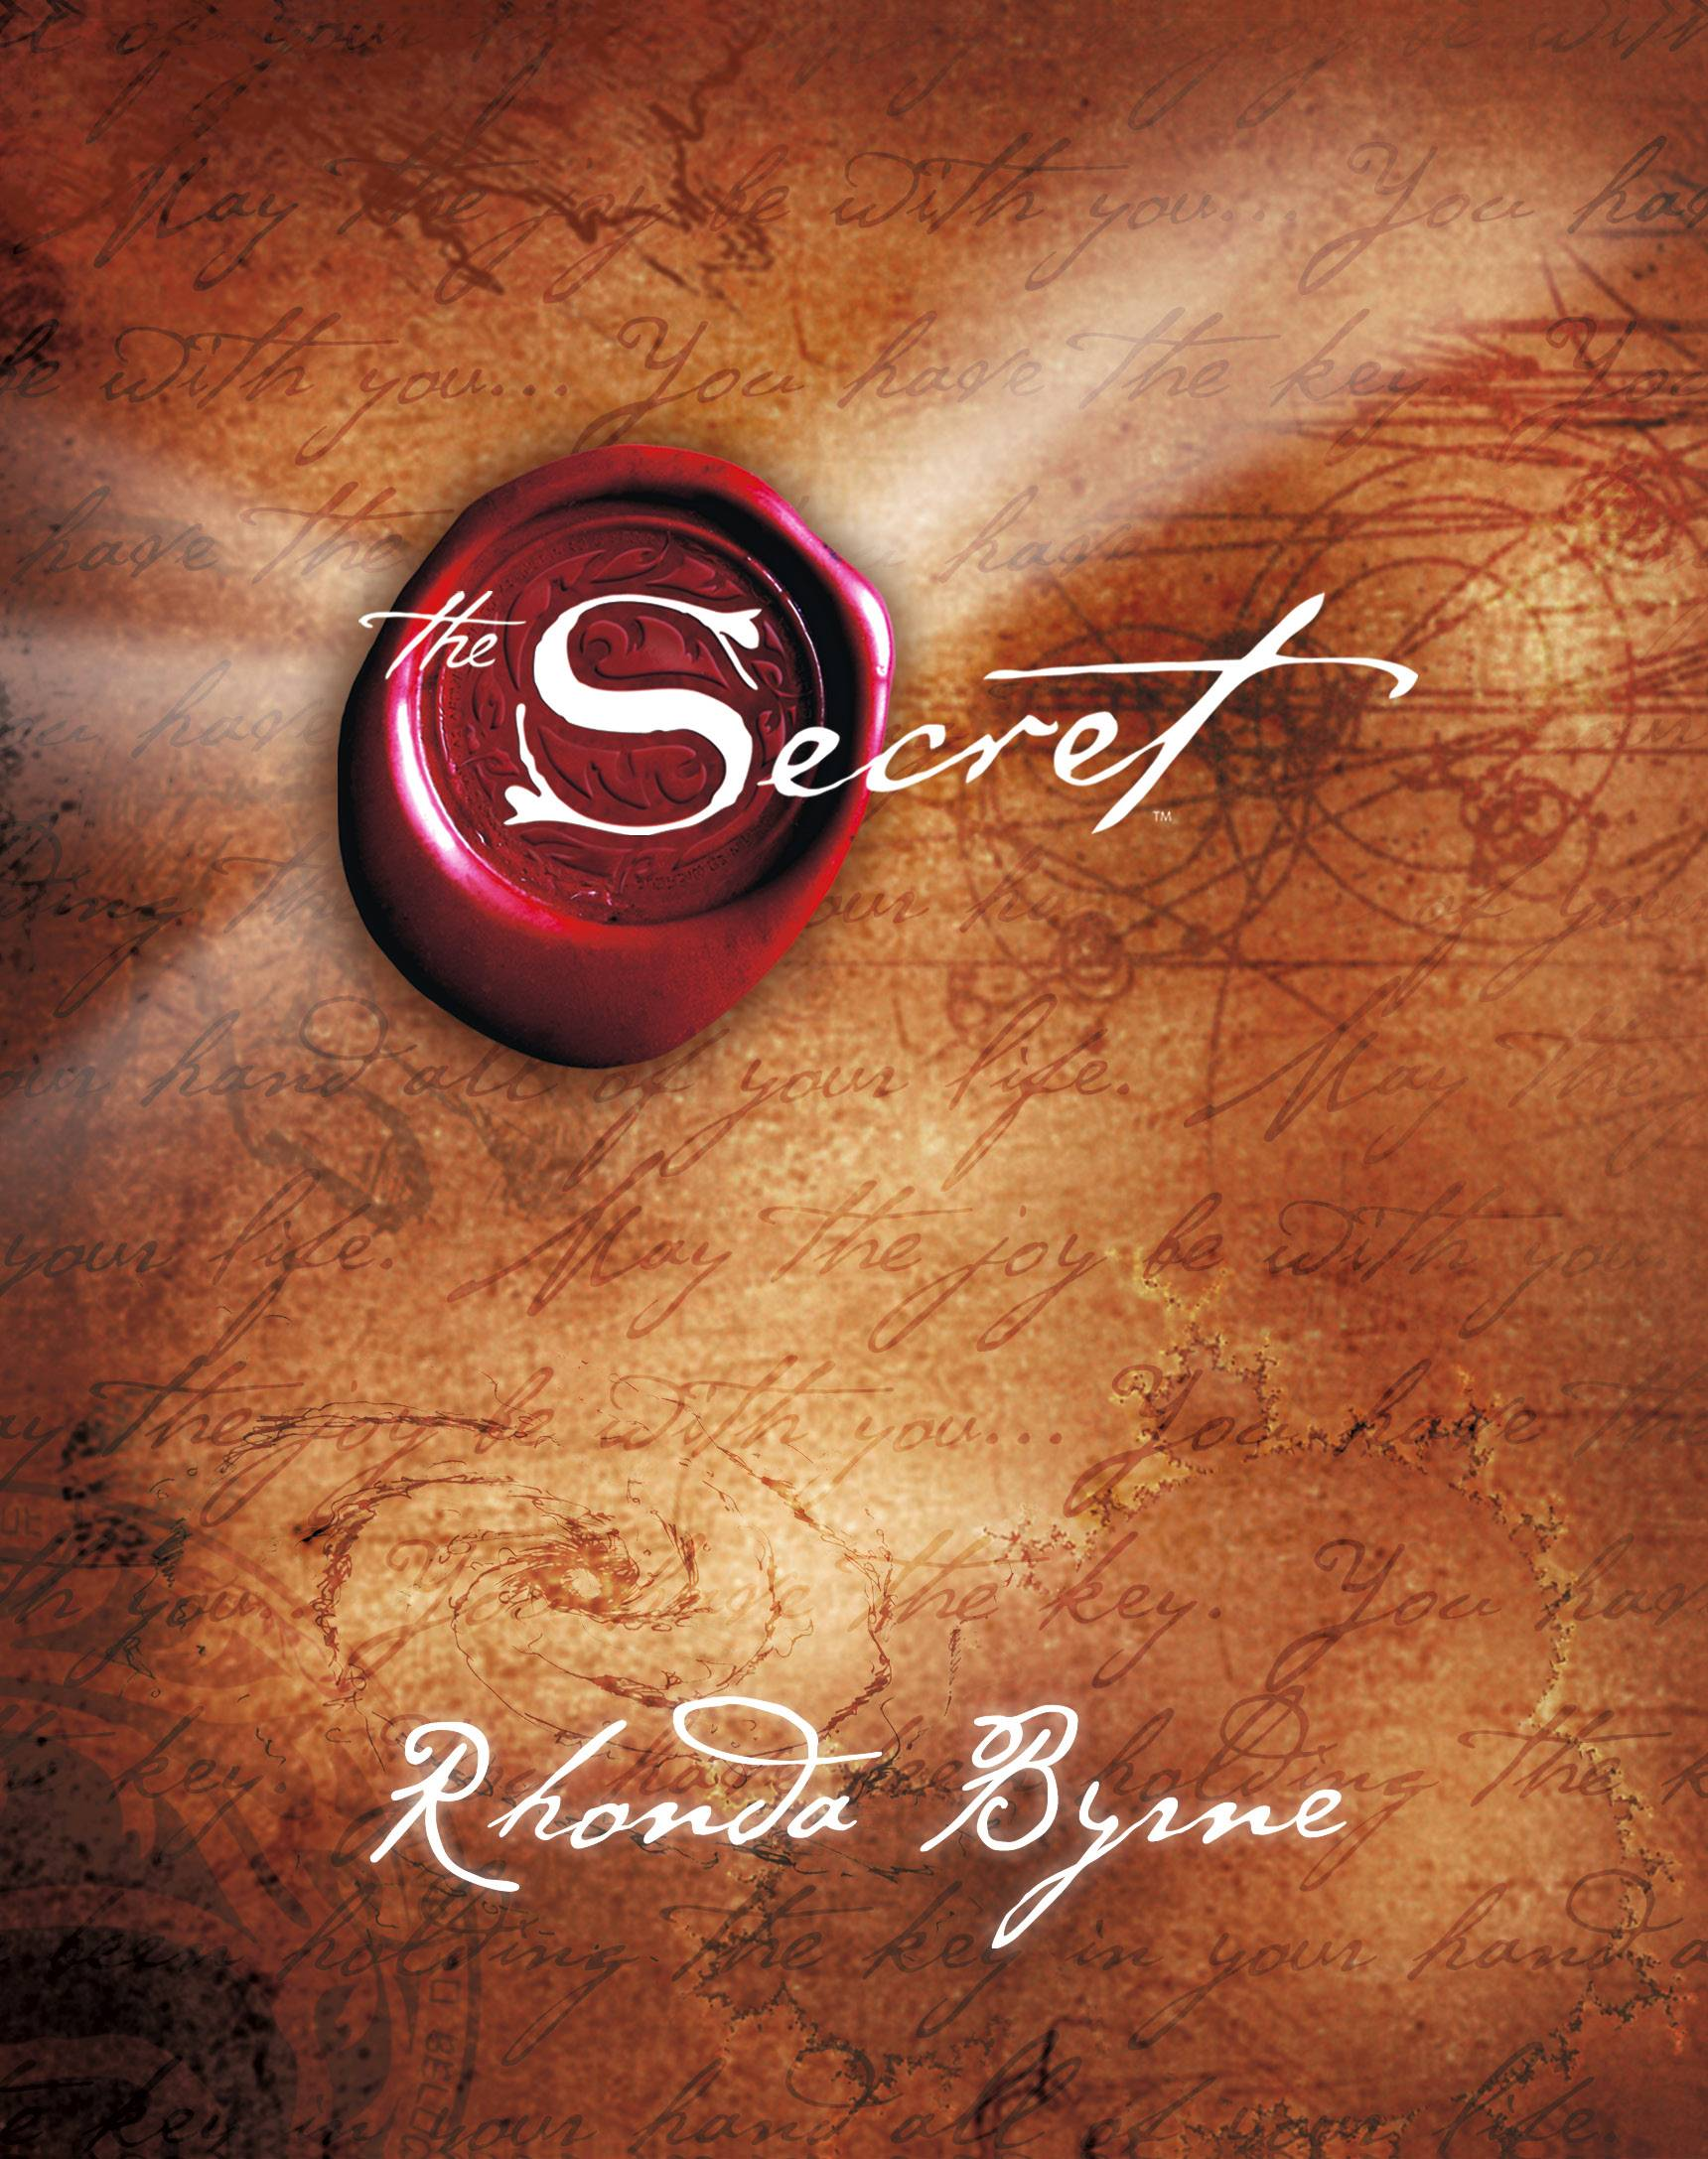 LAW OF ATTRACTION - The Secret by Rhonda ByrneListed as the number-one book on the New York Times Bestseller List, The Secret will teach you about the importance of the law of attraction. The book covers health, relationships, happiness and other aspects of leading a healthy lifestyle. You can apply aspects of this book into everyday actions towards success.(Photo:Atria Books)